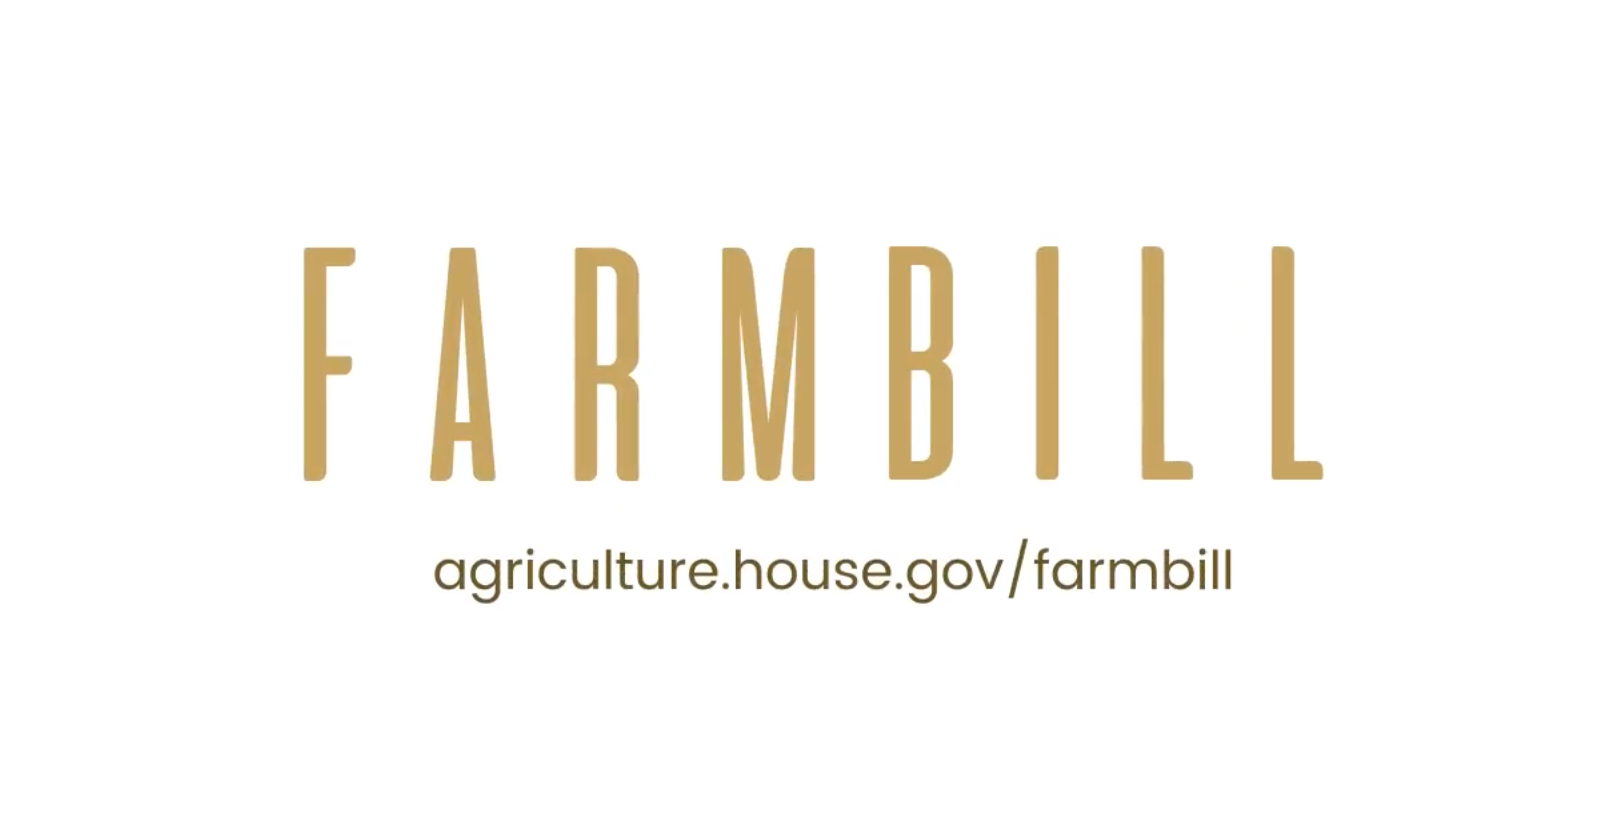 House Ag Committee Launches Farm Bill Website